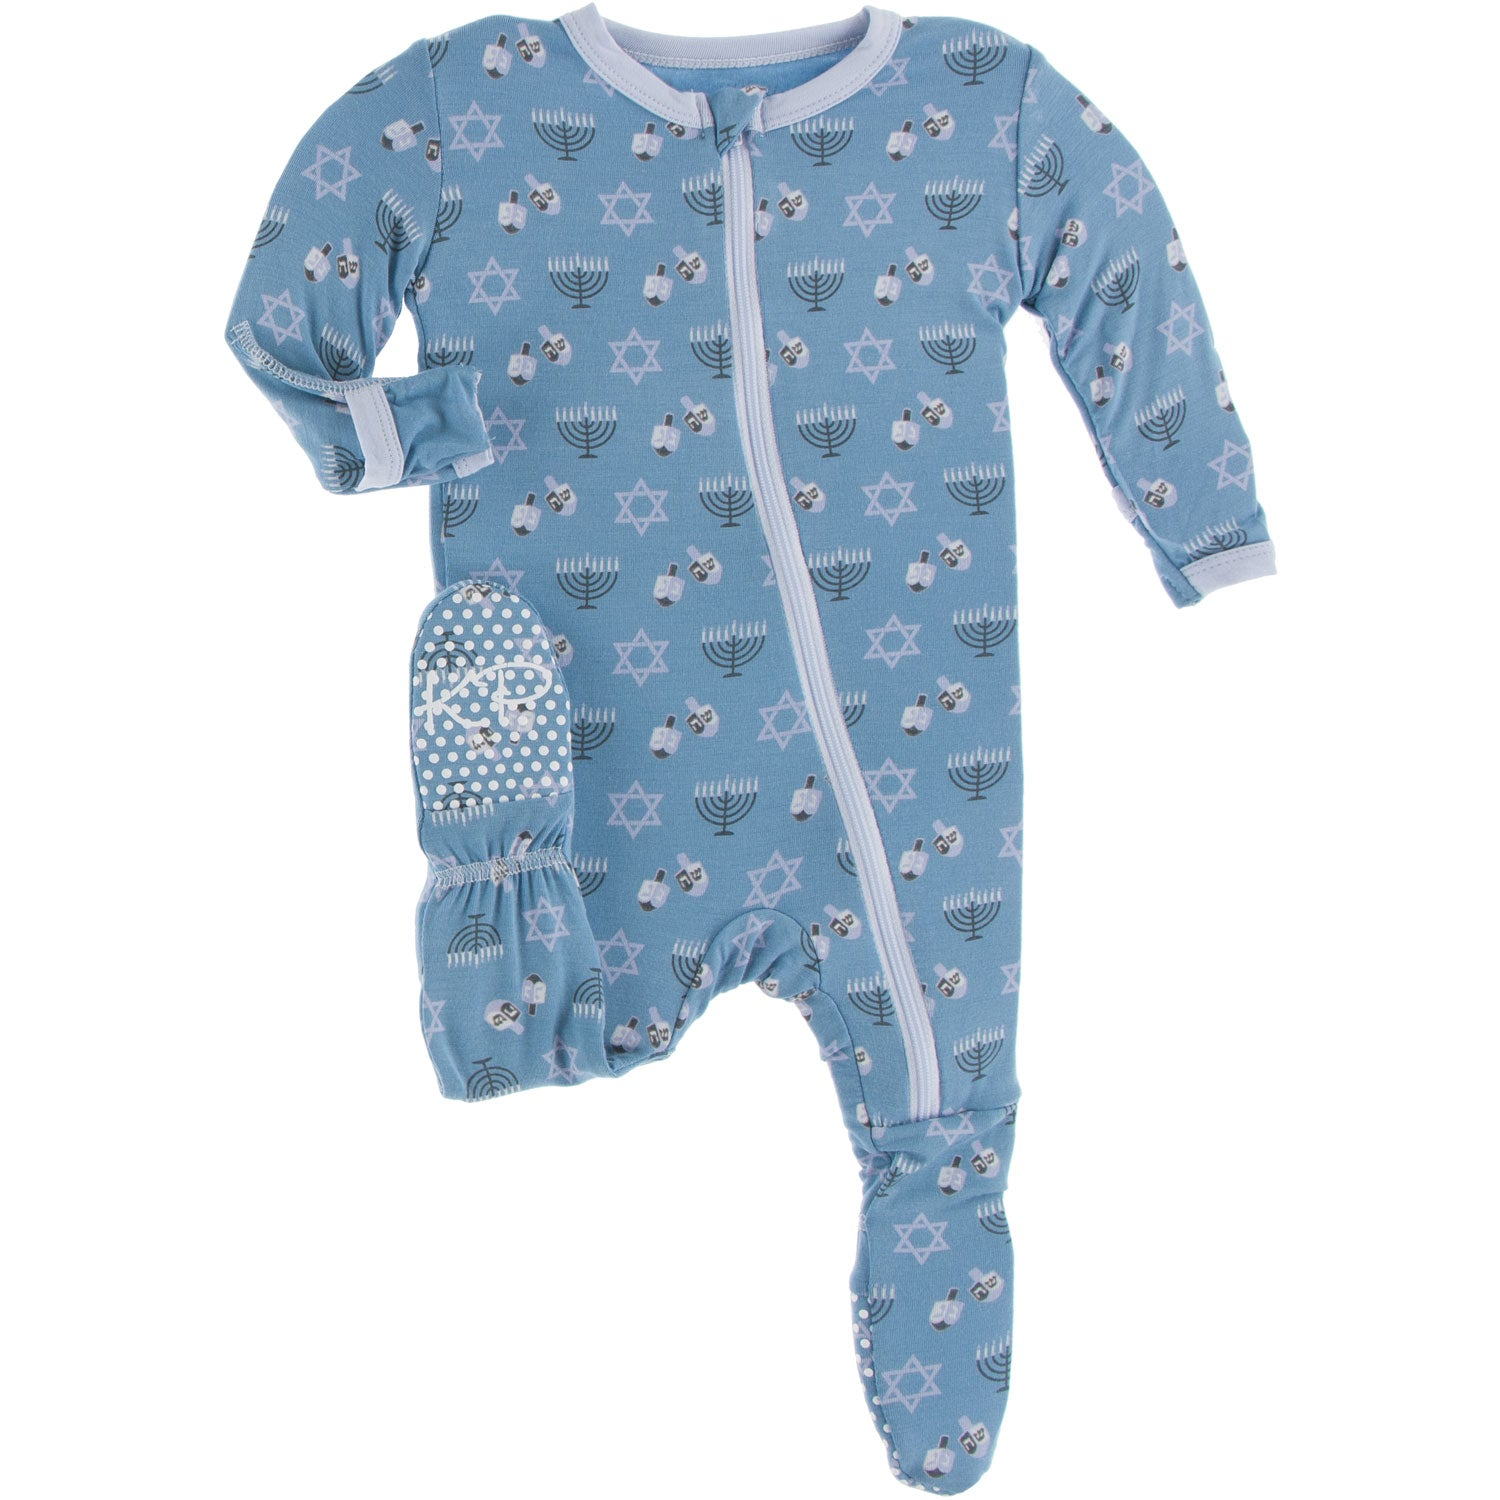 Kickee Pants Footie - Blue Moon Hanukkah